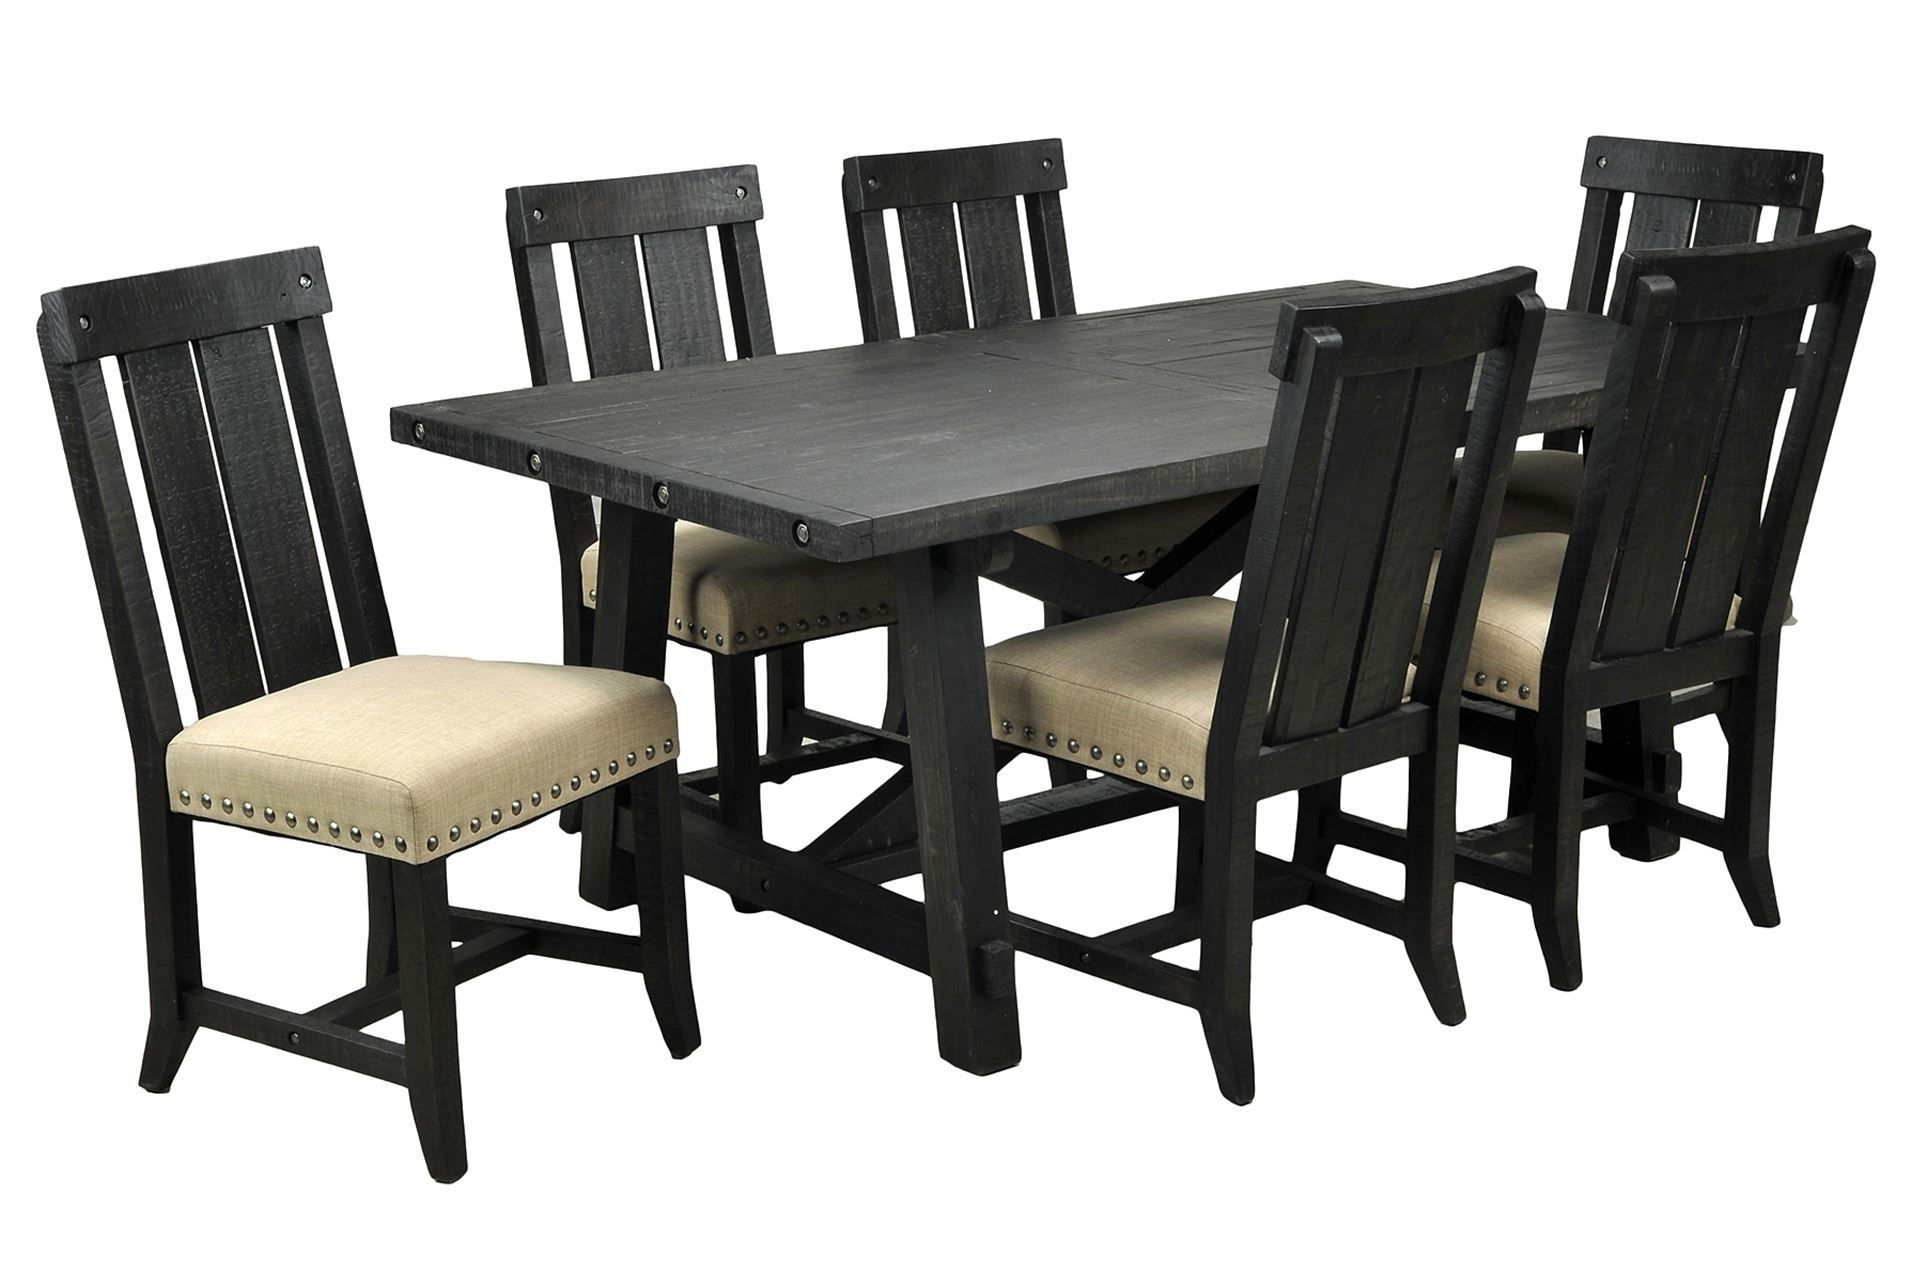 Jaxon 7 Piece Rectangle Dining Set W/wood Chairs | For The House I Inside Latest Jaxon Grey 7 Piece Rectangle Extension Dining Sets With Uph Chairs (Photo 6 of 20)